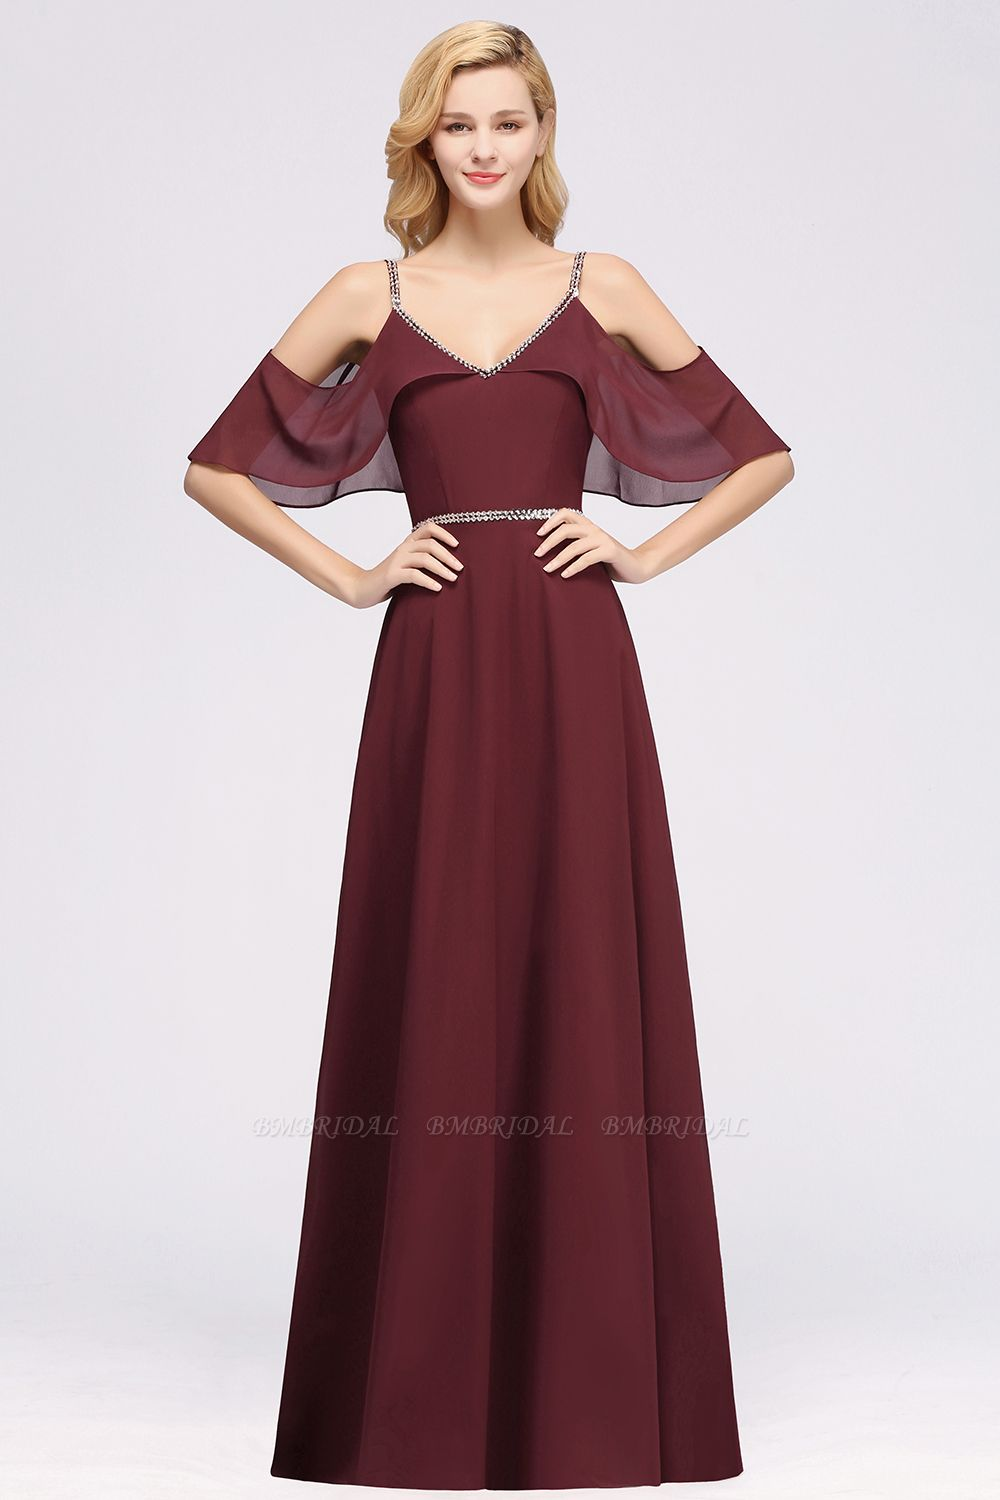 Burgundy Cold-shoulder Long Bridesmaid Dress With Half Sleeve